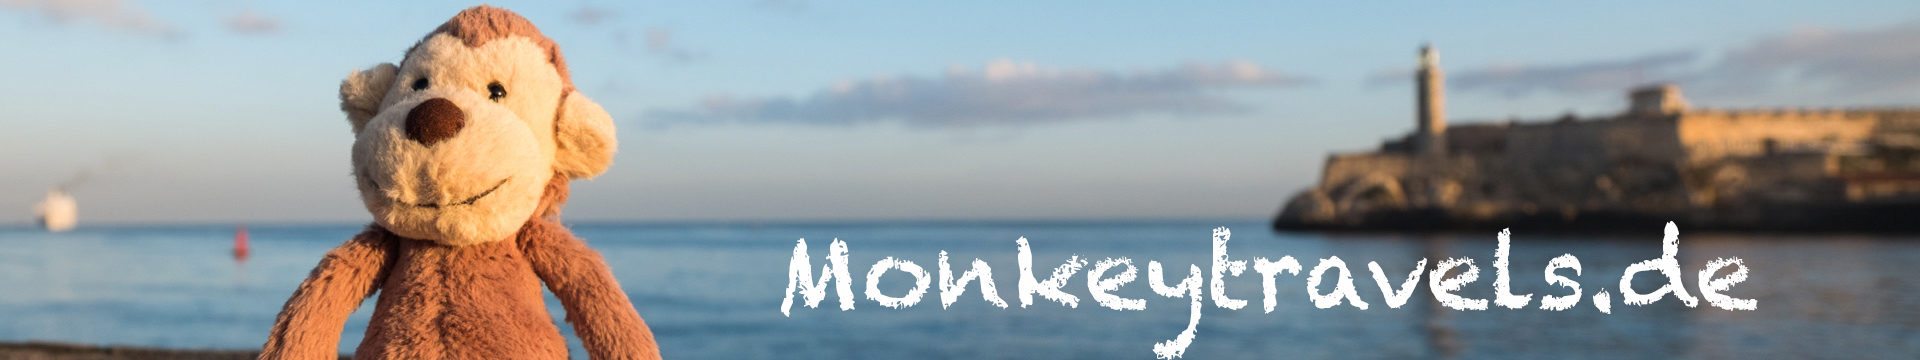 monkeytravels.de